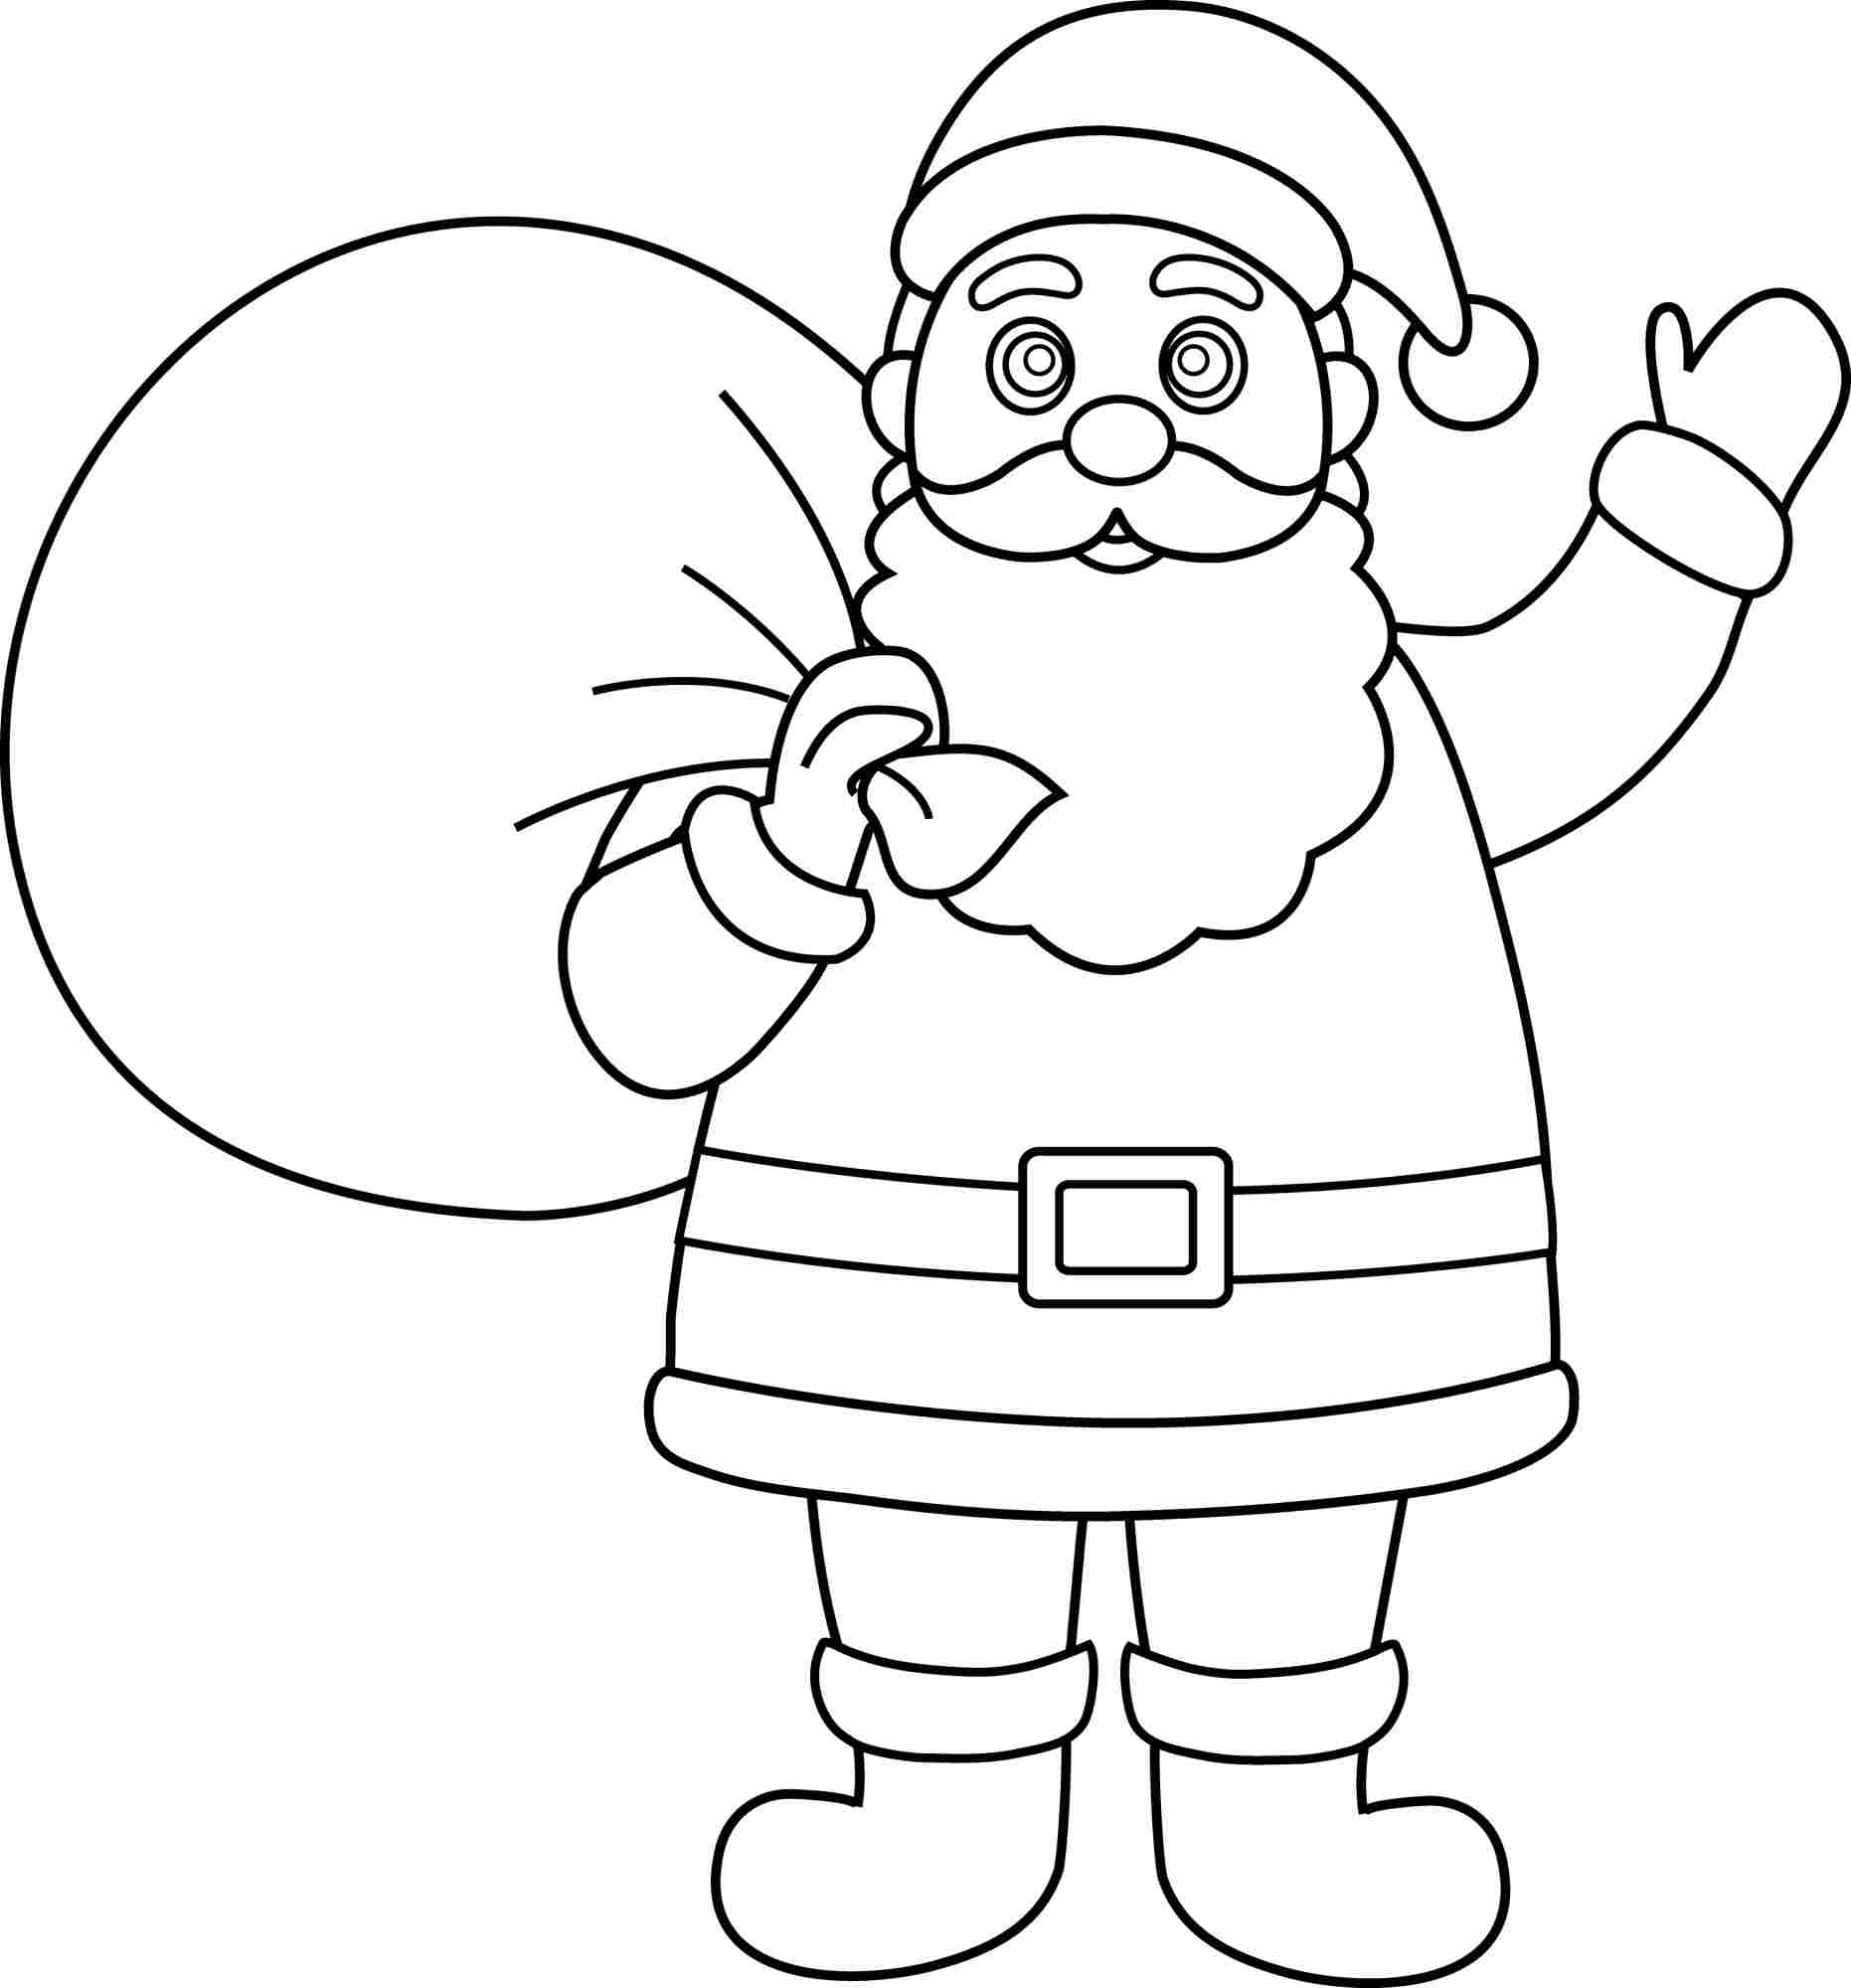 100 ideas Santa Claus Face Coloring Page on kankanwzcom